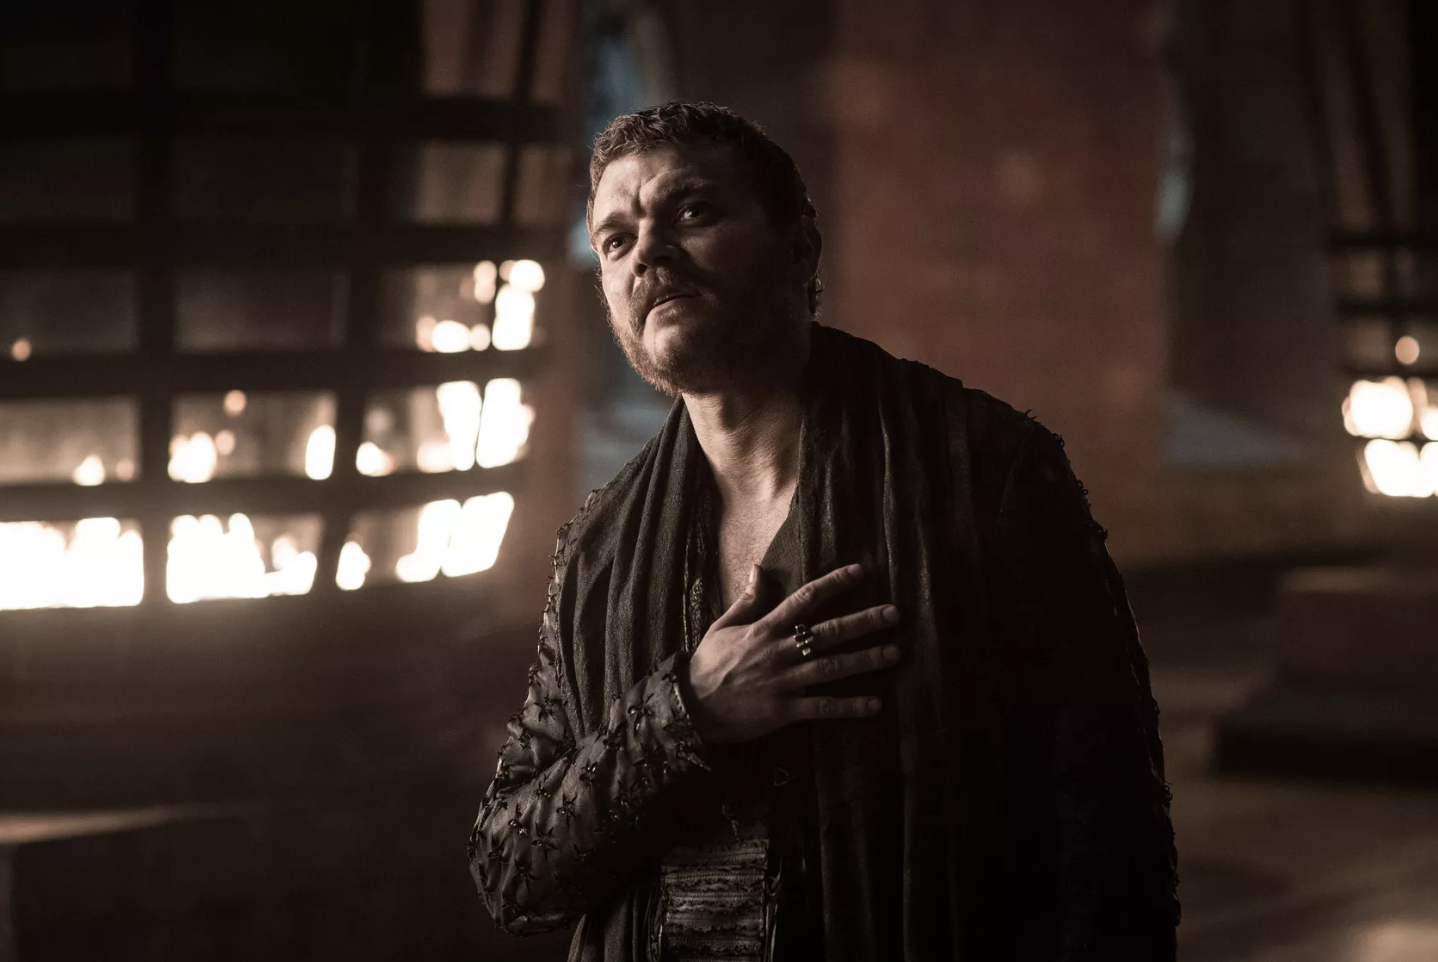 Game of Thrones fans aren't happy about that Euron Greyjoy and Jaime Lannister scene